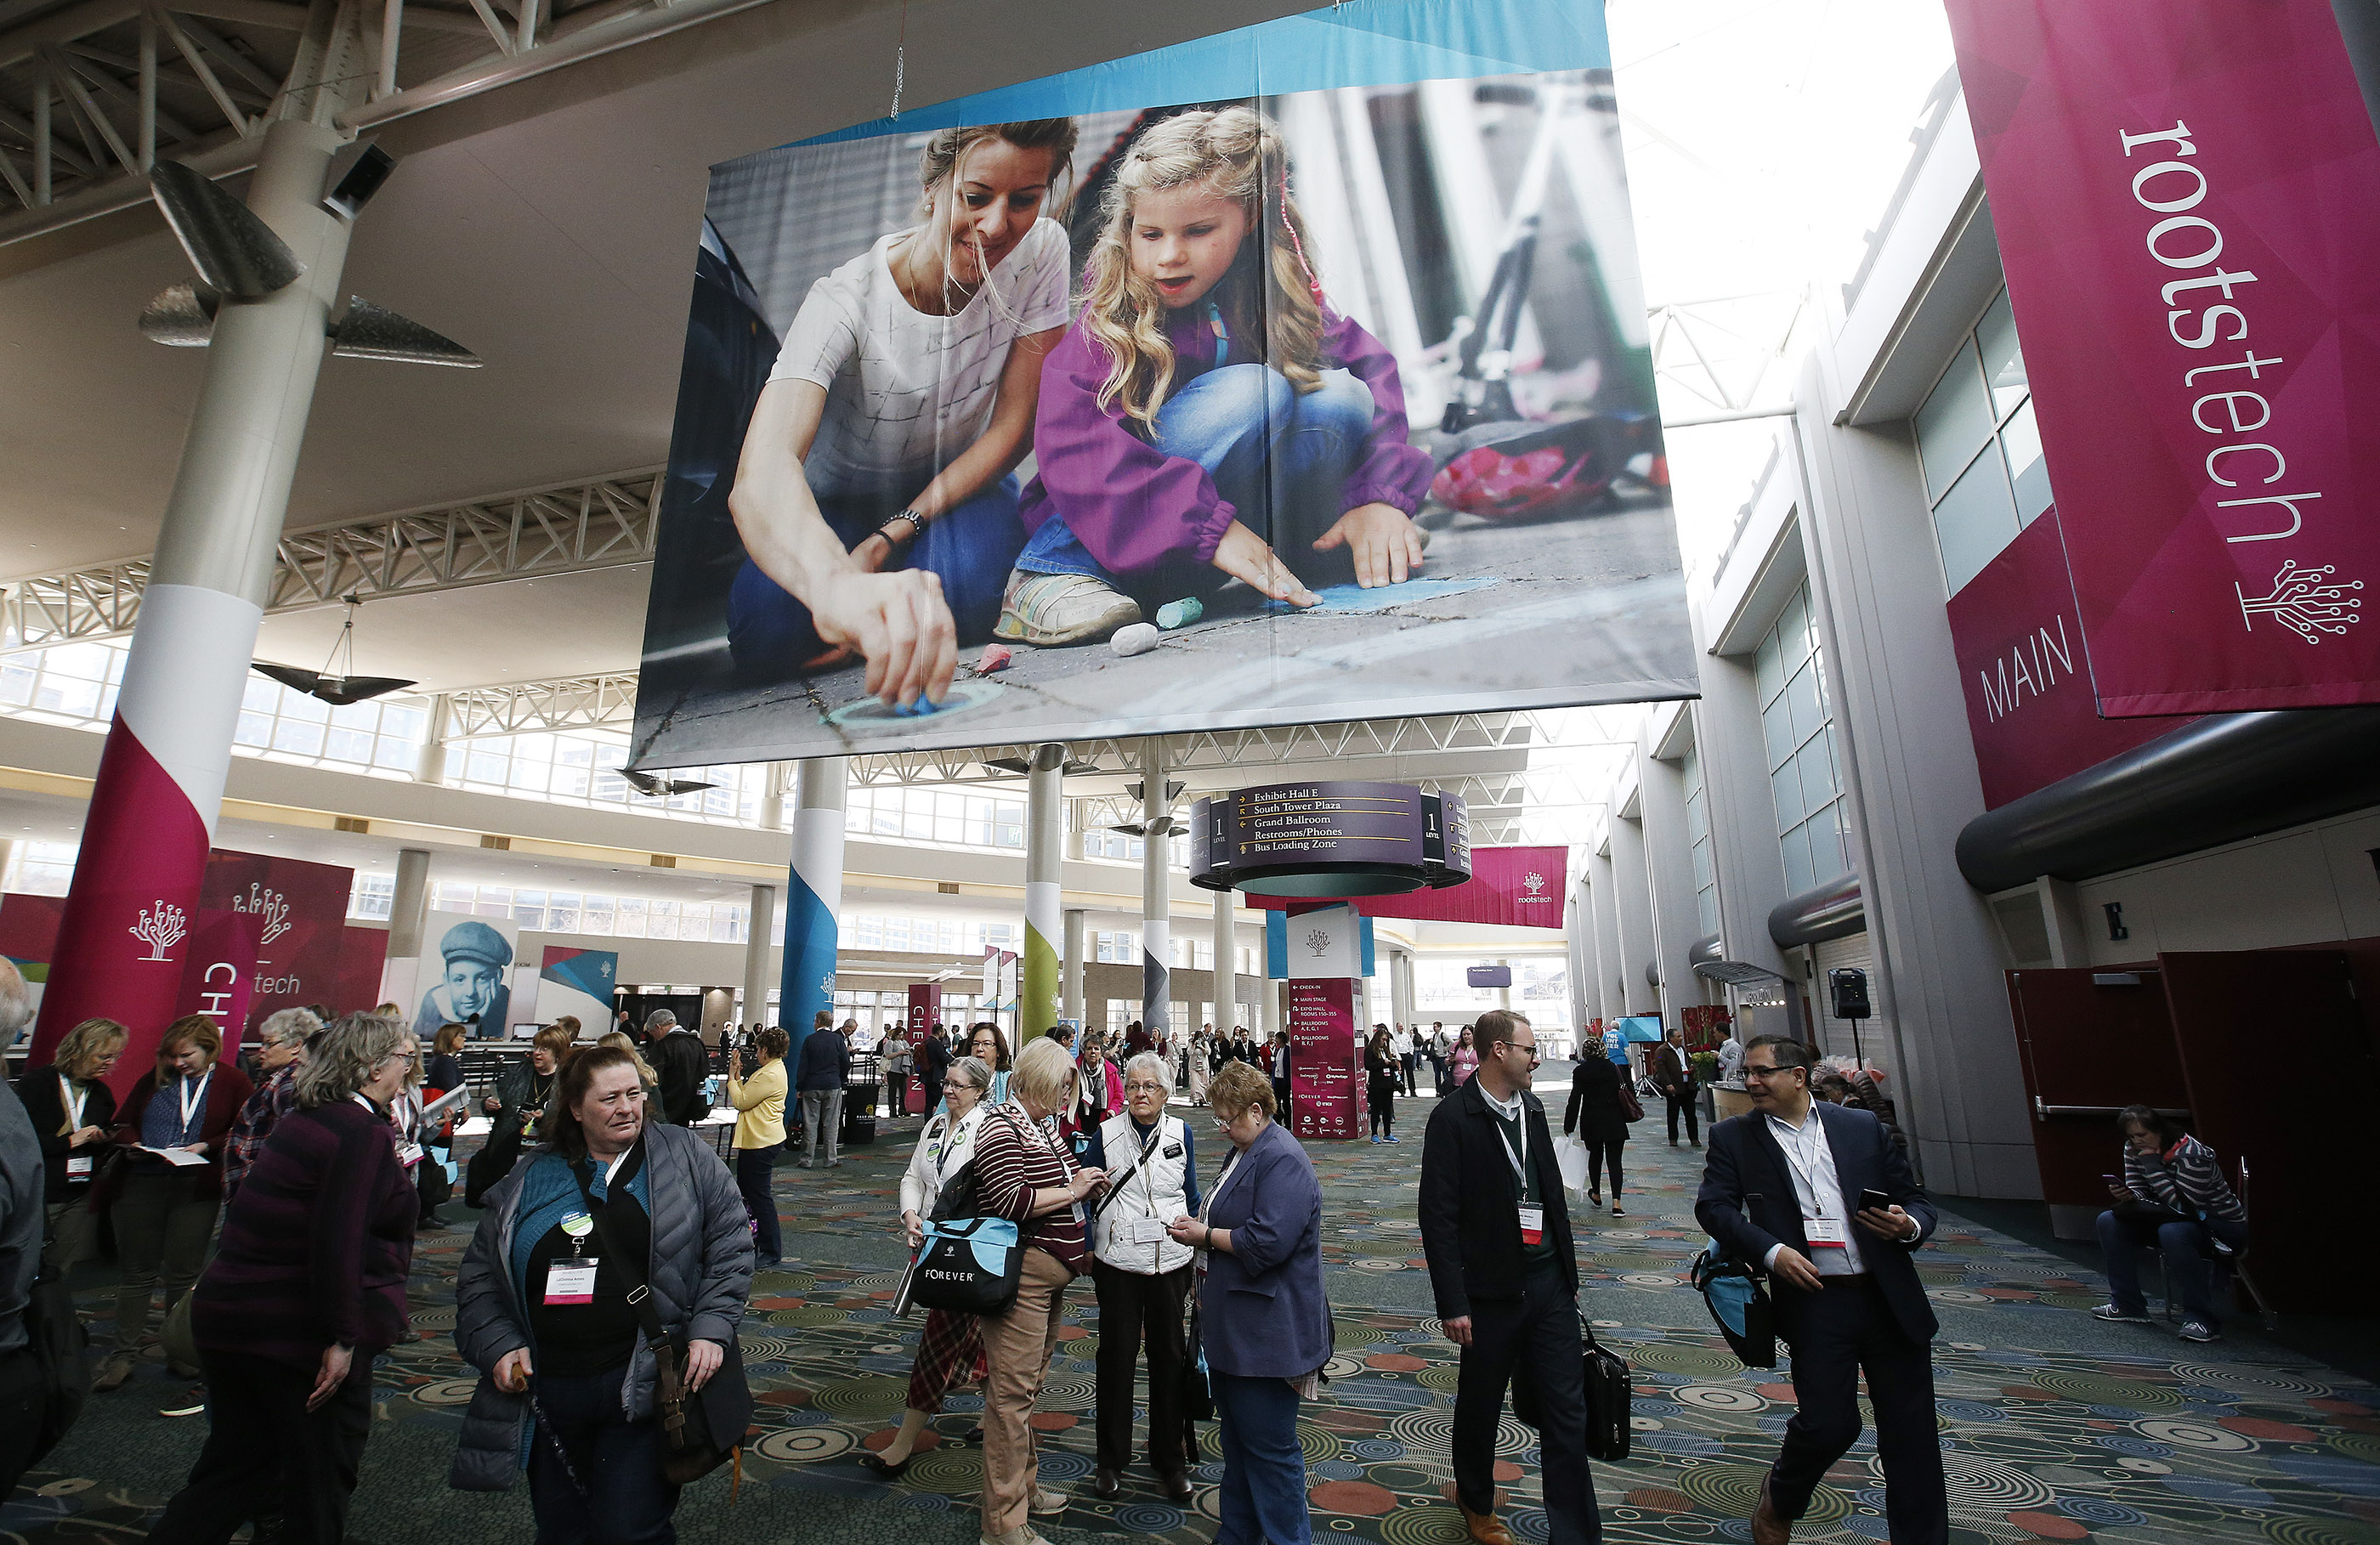 RootsTech attendees walk through the convention in Salt Lake City on Friday, March 2, 2018. This year's RootsTech is scheduled for Feb. 27-March 2 at the Salt Palace Convention Center.